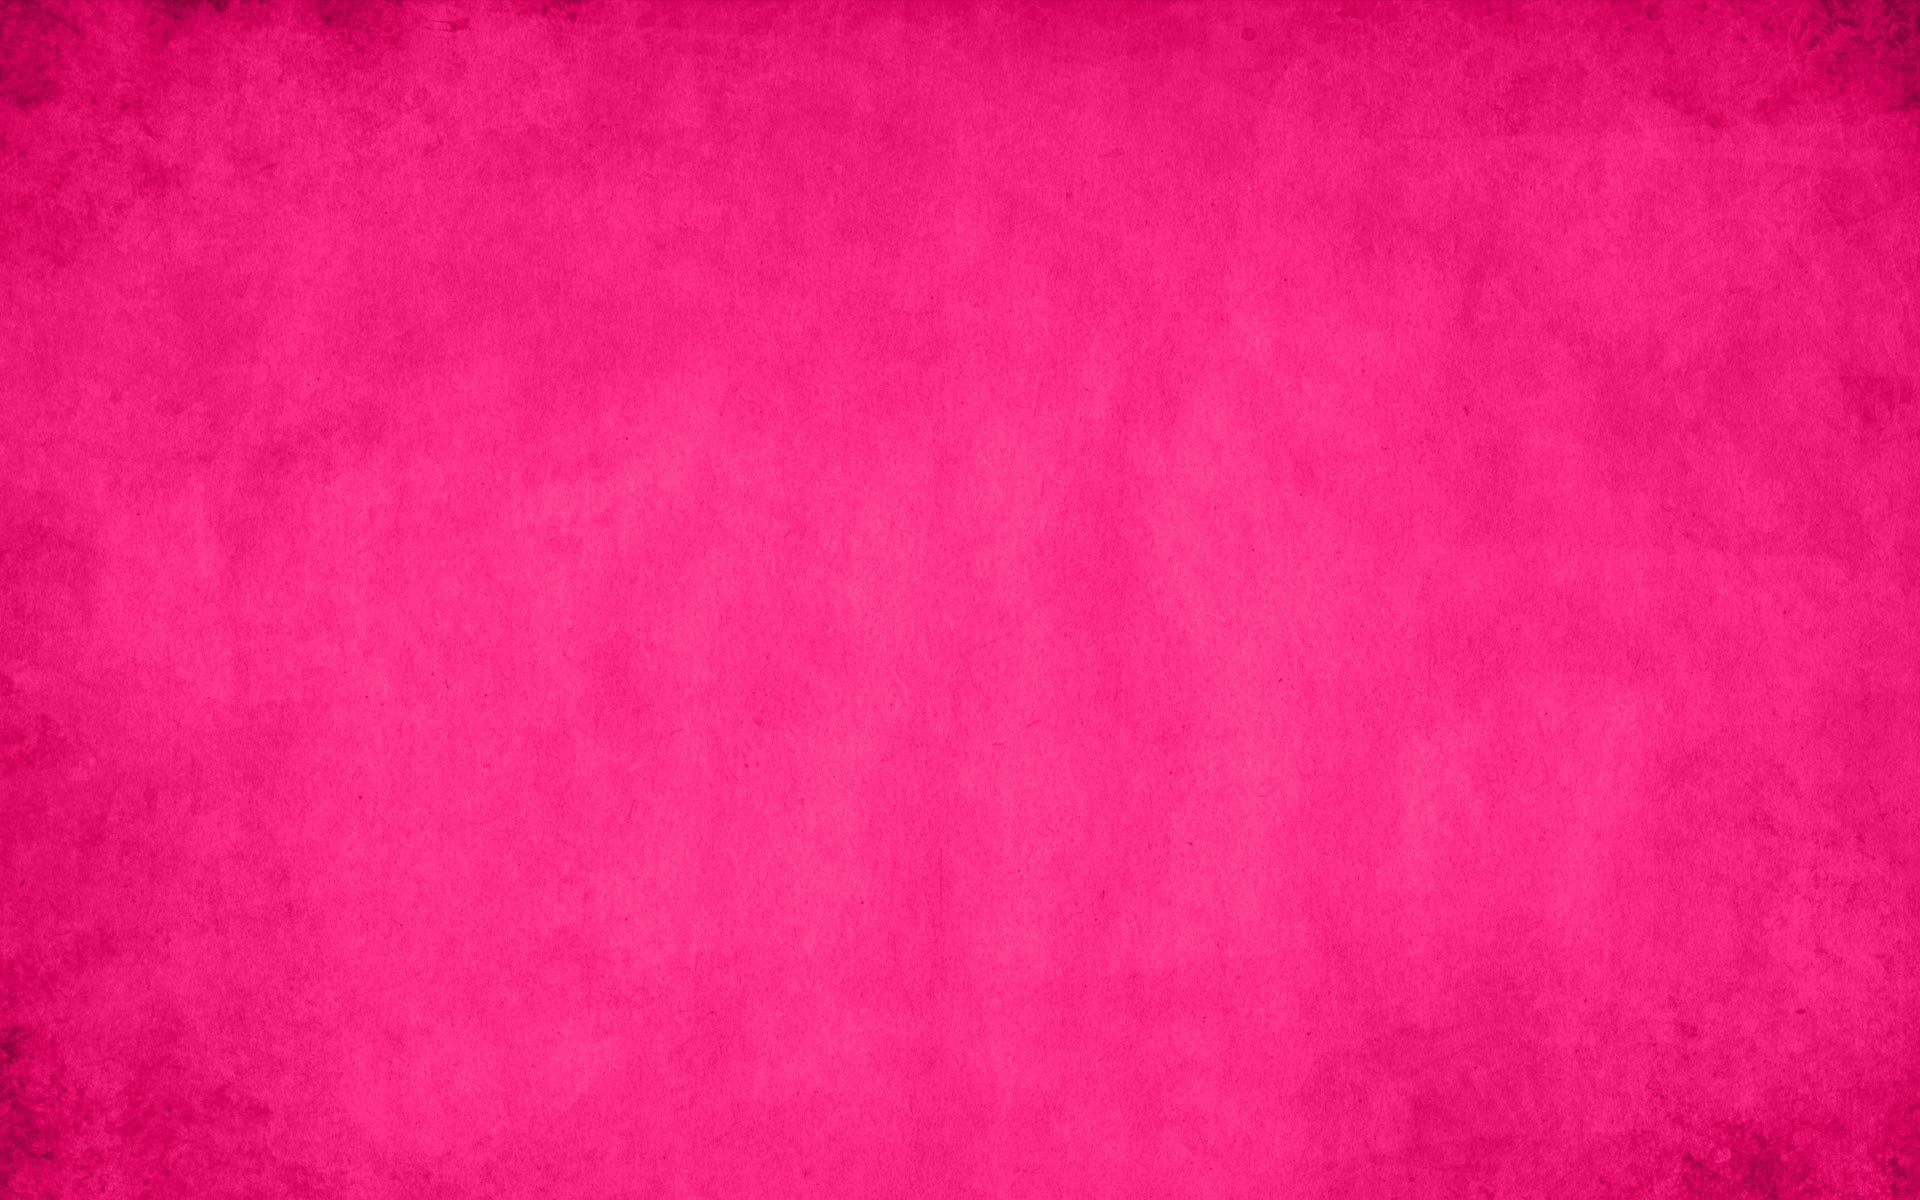 30 HD Pink Wallpapers 1920x1200